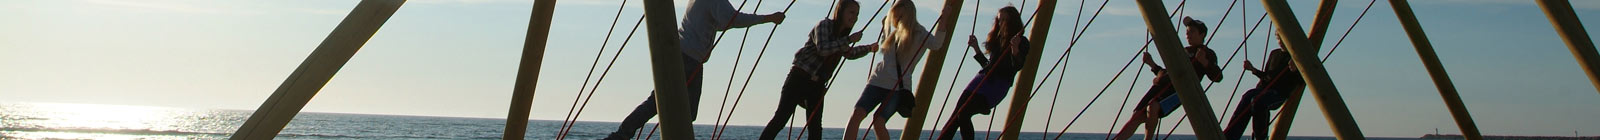 Ventspils, Latvia, swing on beach - Banner